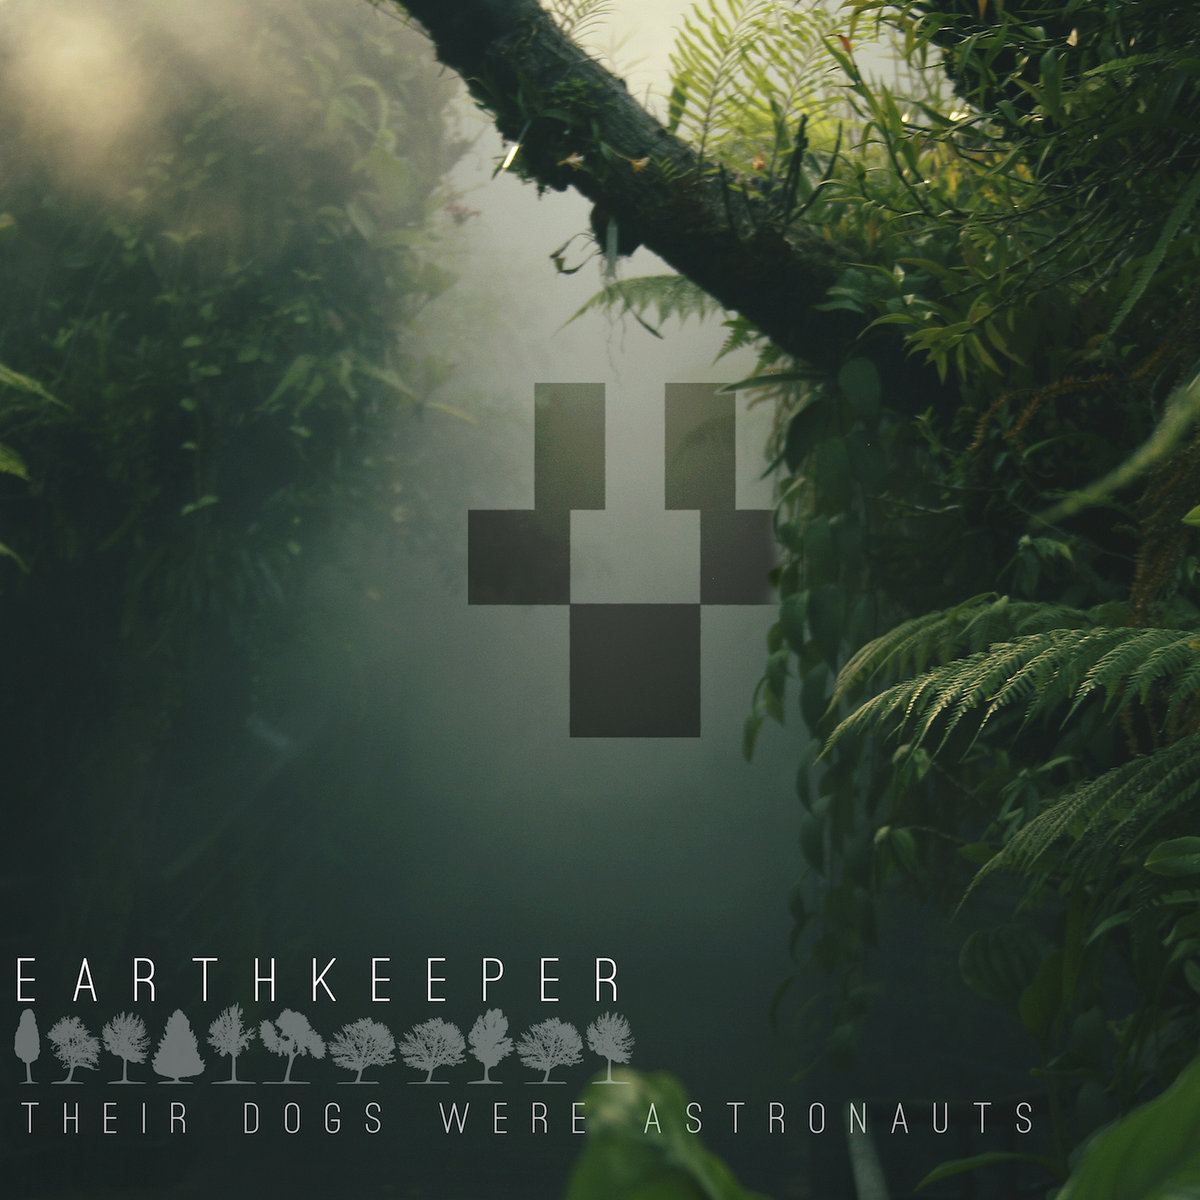 Their Dogs Were Astronauts - Dead End @ 'Earthkeeper' album (instrumental metal, metal)